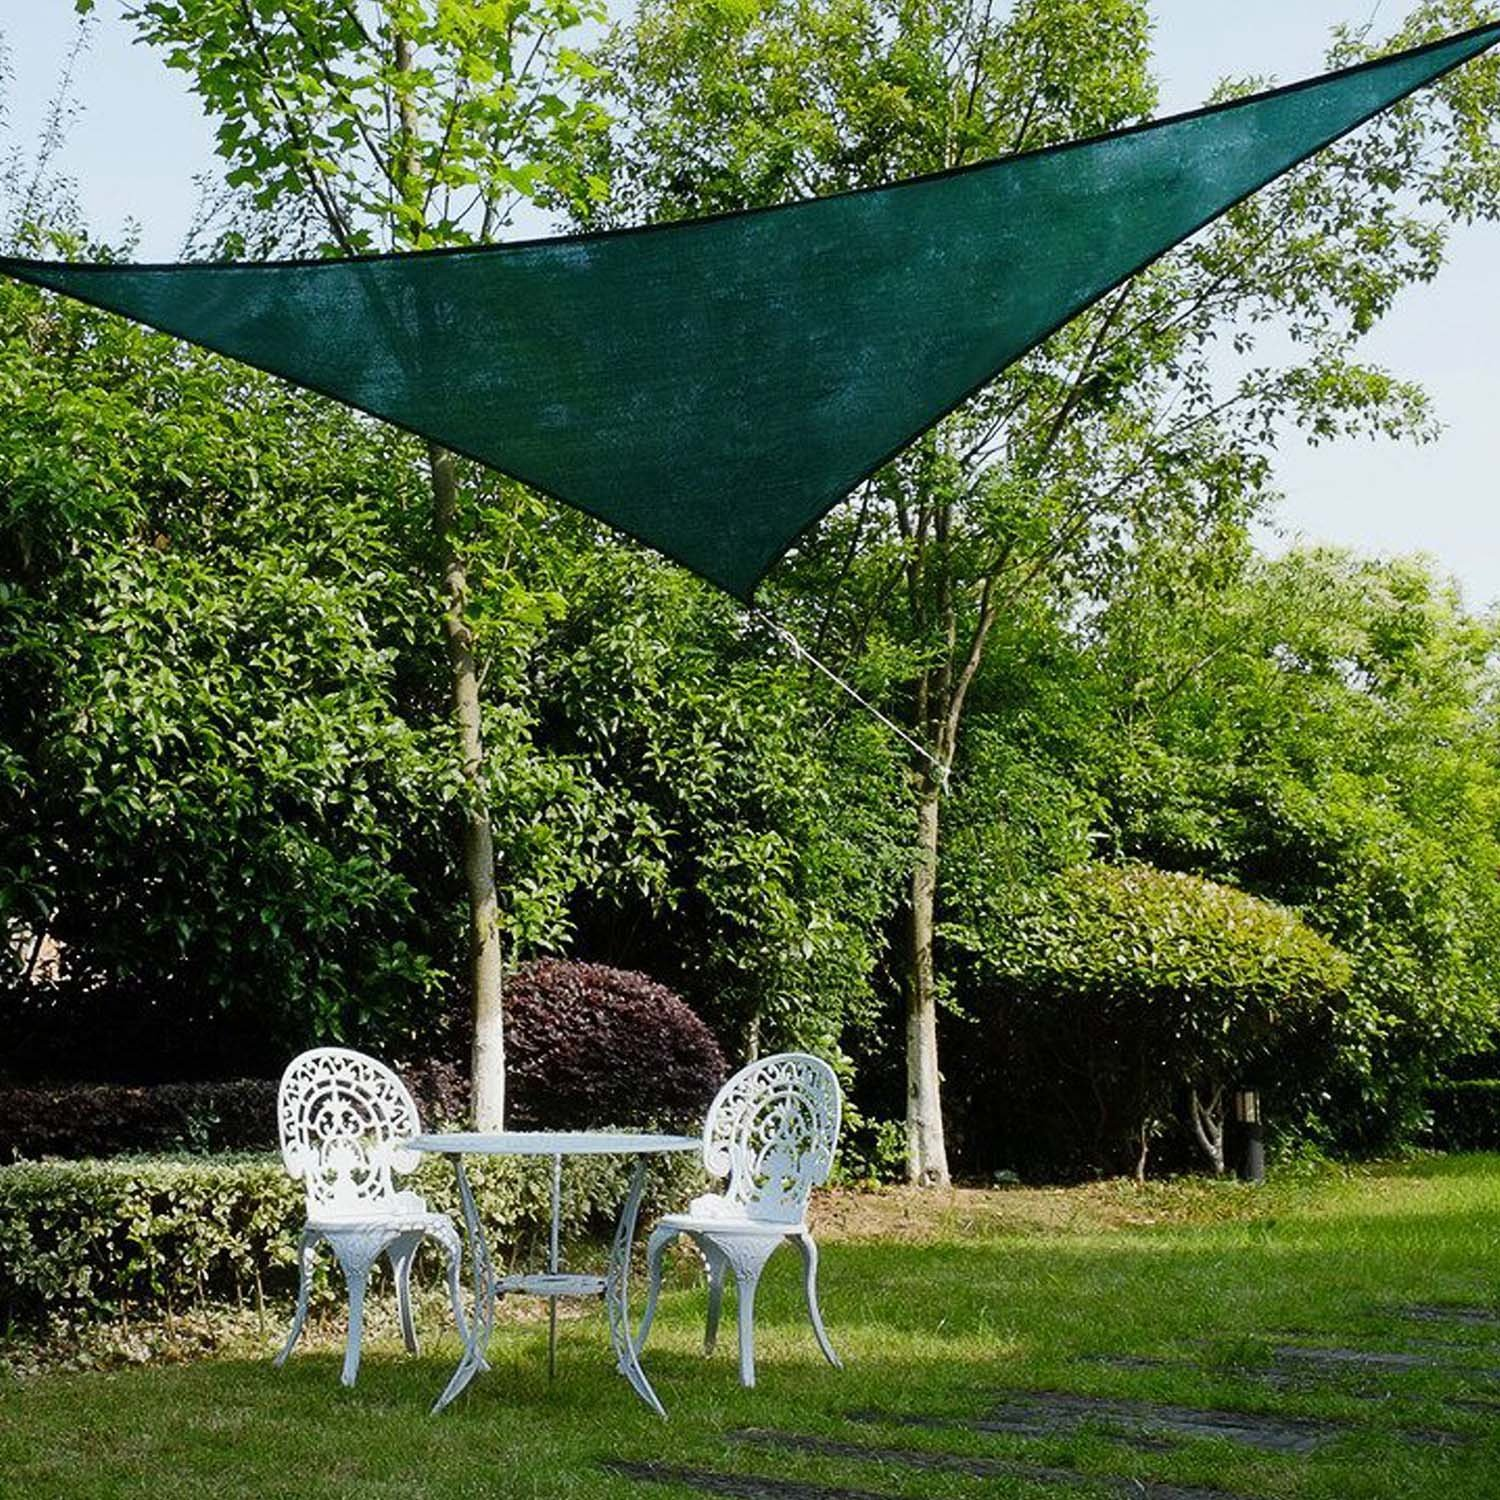 Jinguan 12u0027x12u0027x12u0027 Shade Sail UV Block Fabric Patio Outdoor Canopy Sun  Shelter With PE Ropes And Steel D Rings In Shade Sails U0026 Nets From Home U0026  Garden On ...